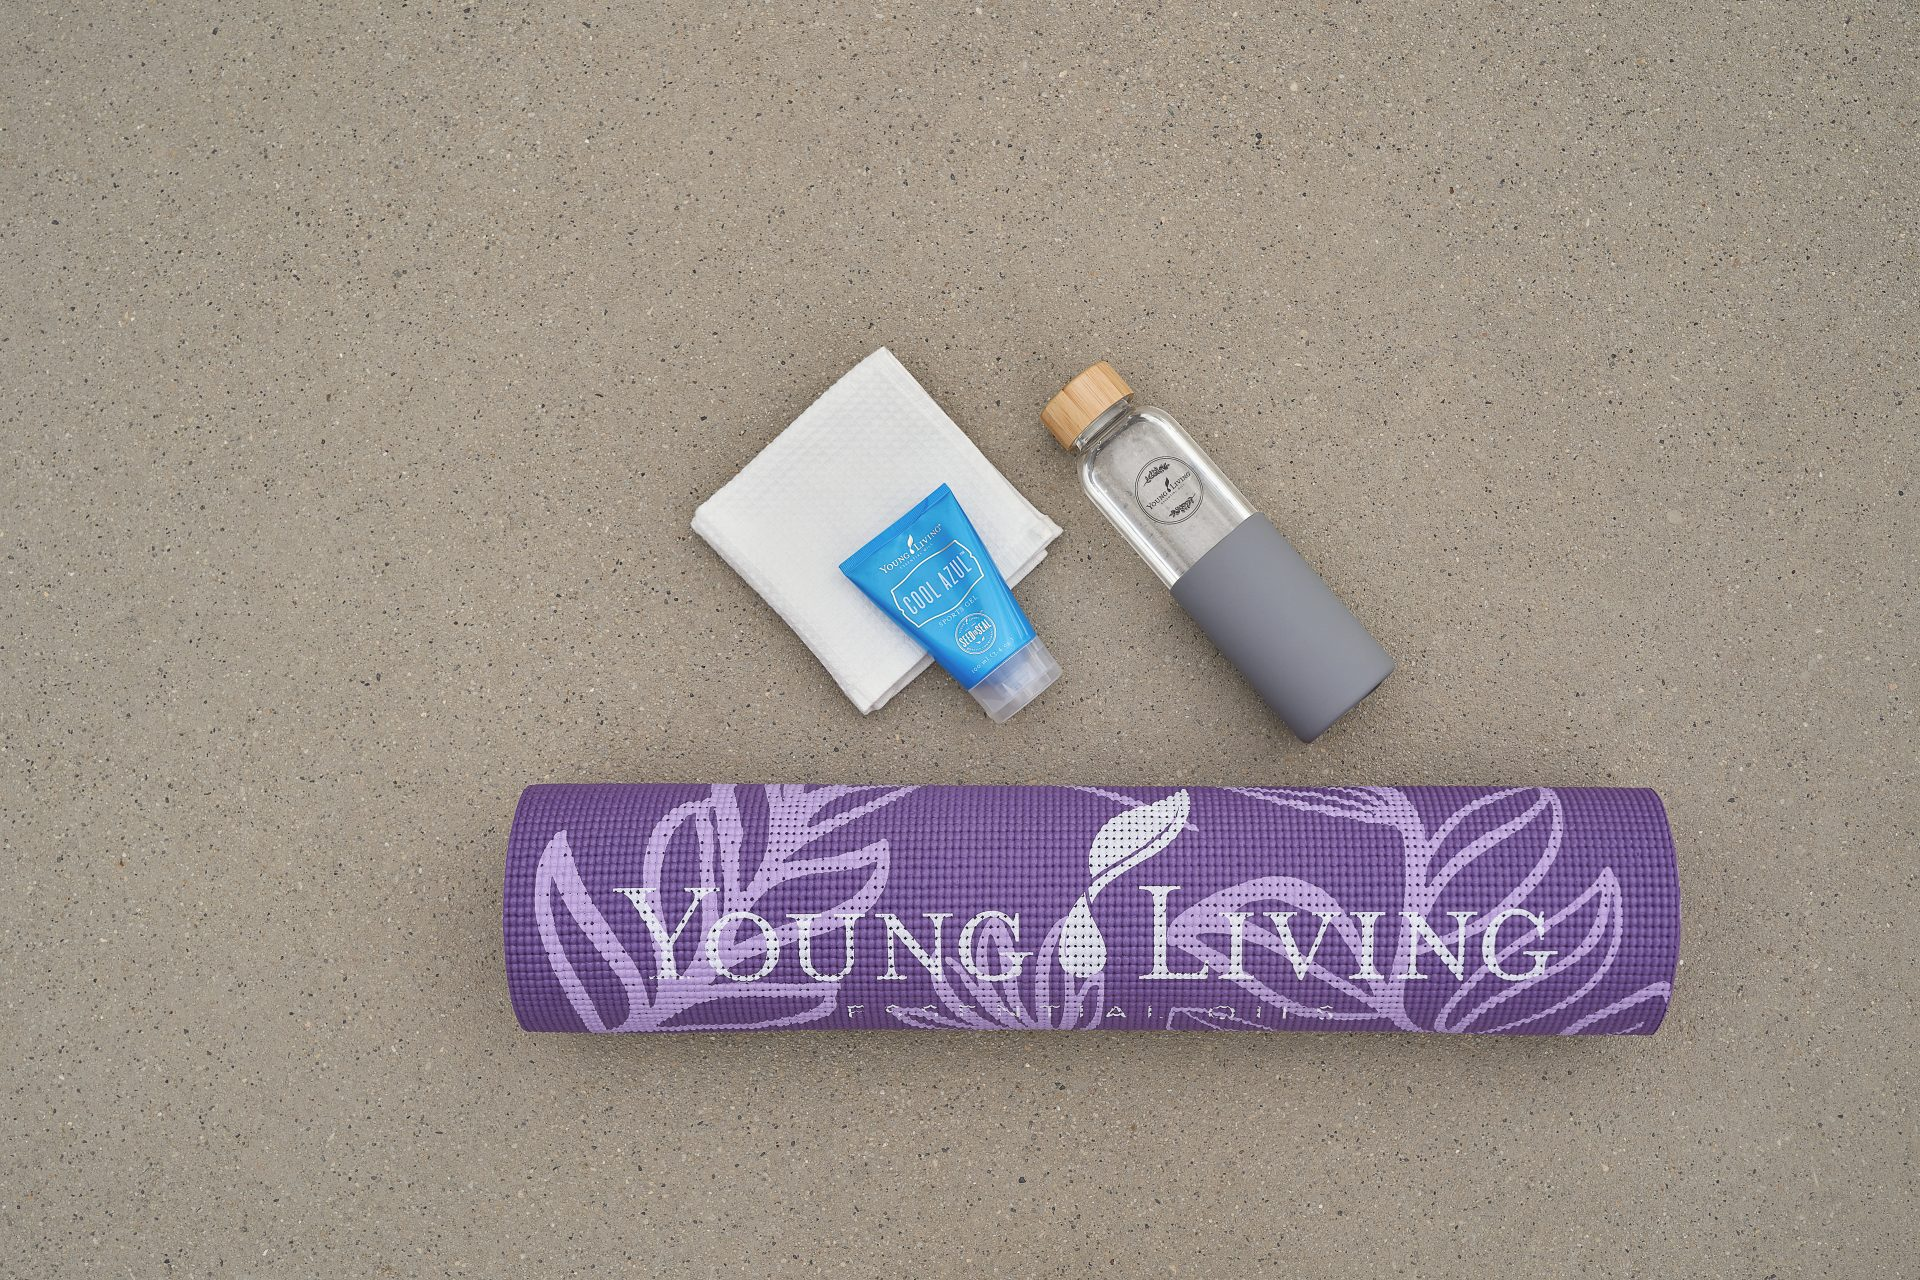 Yoga mat, bottles, and cooling cream